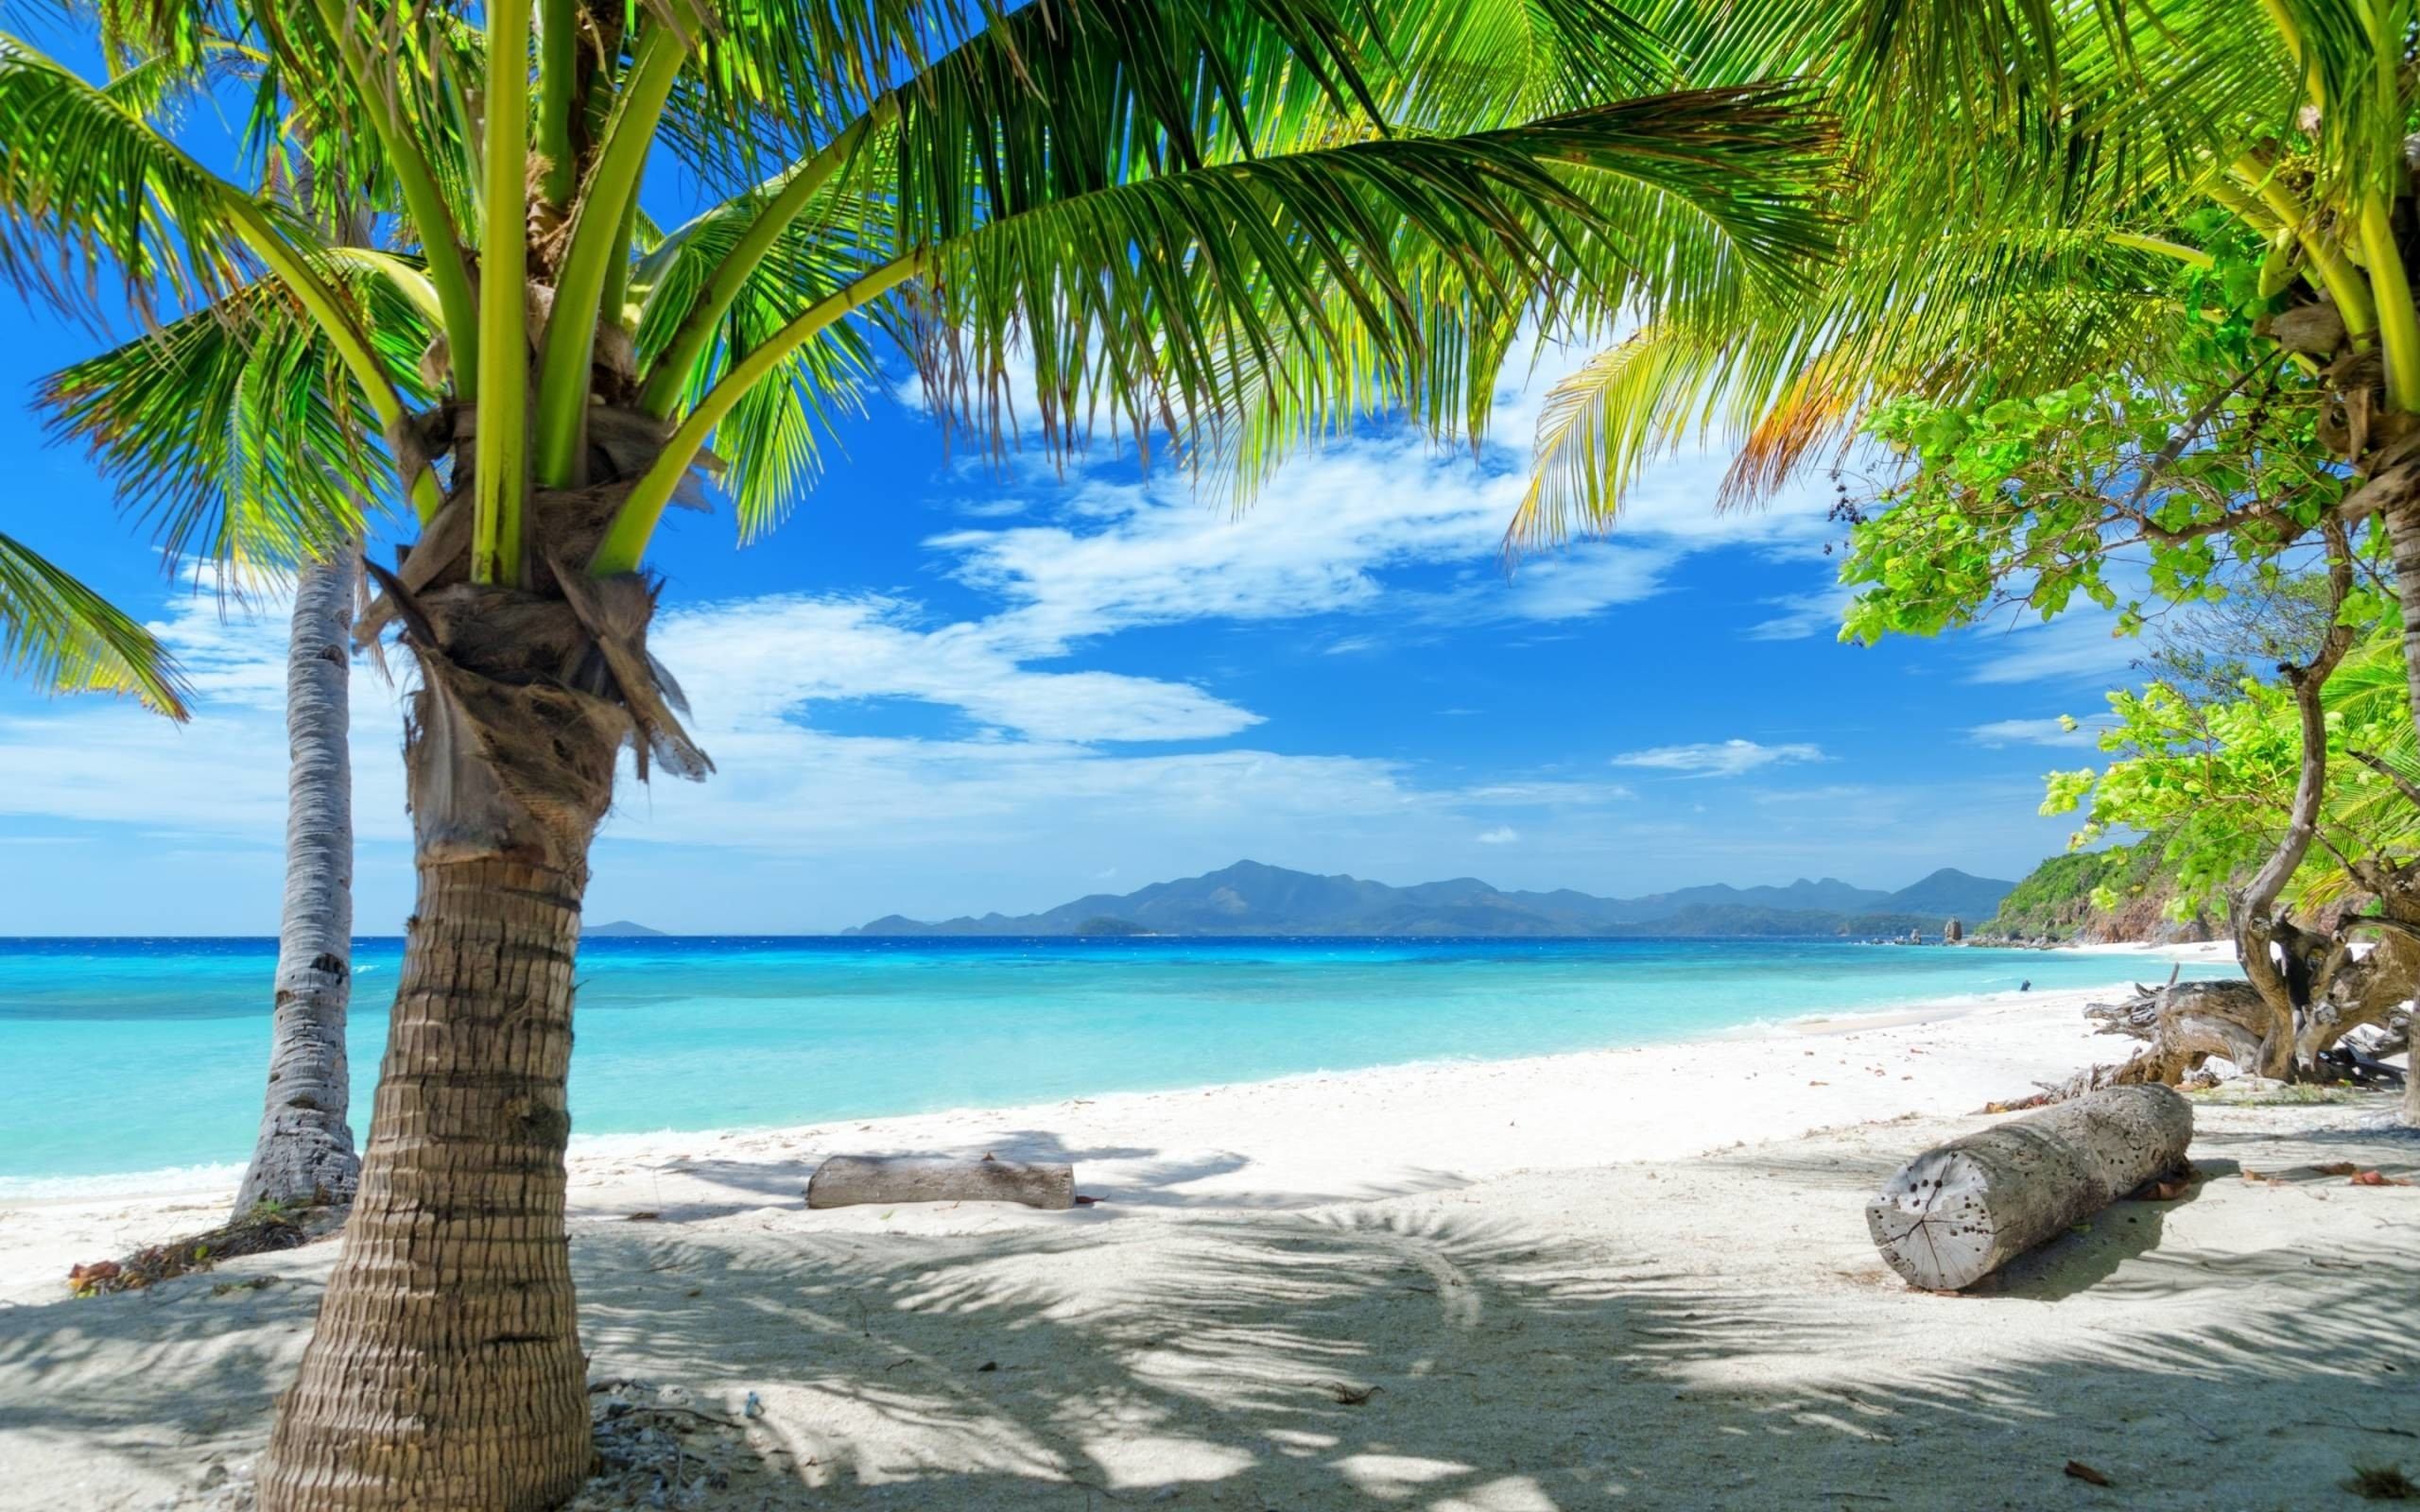 Tempting ocean beach with palm trees HD Desktop Wallpaper | HD .